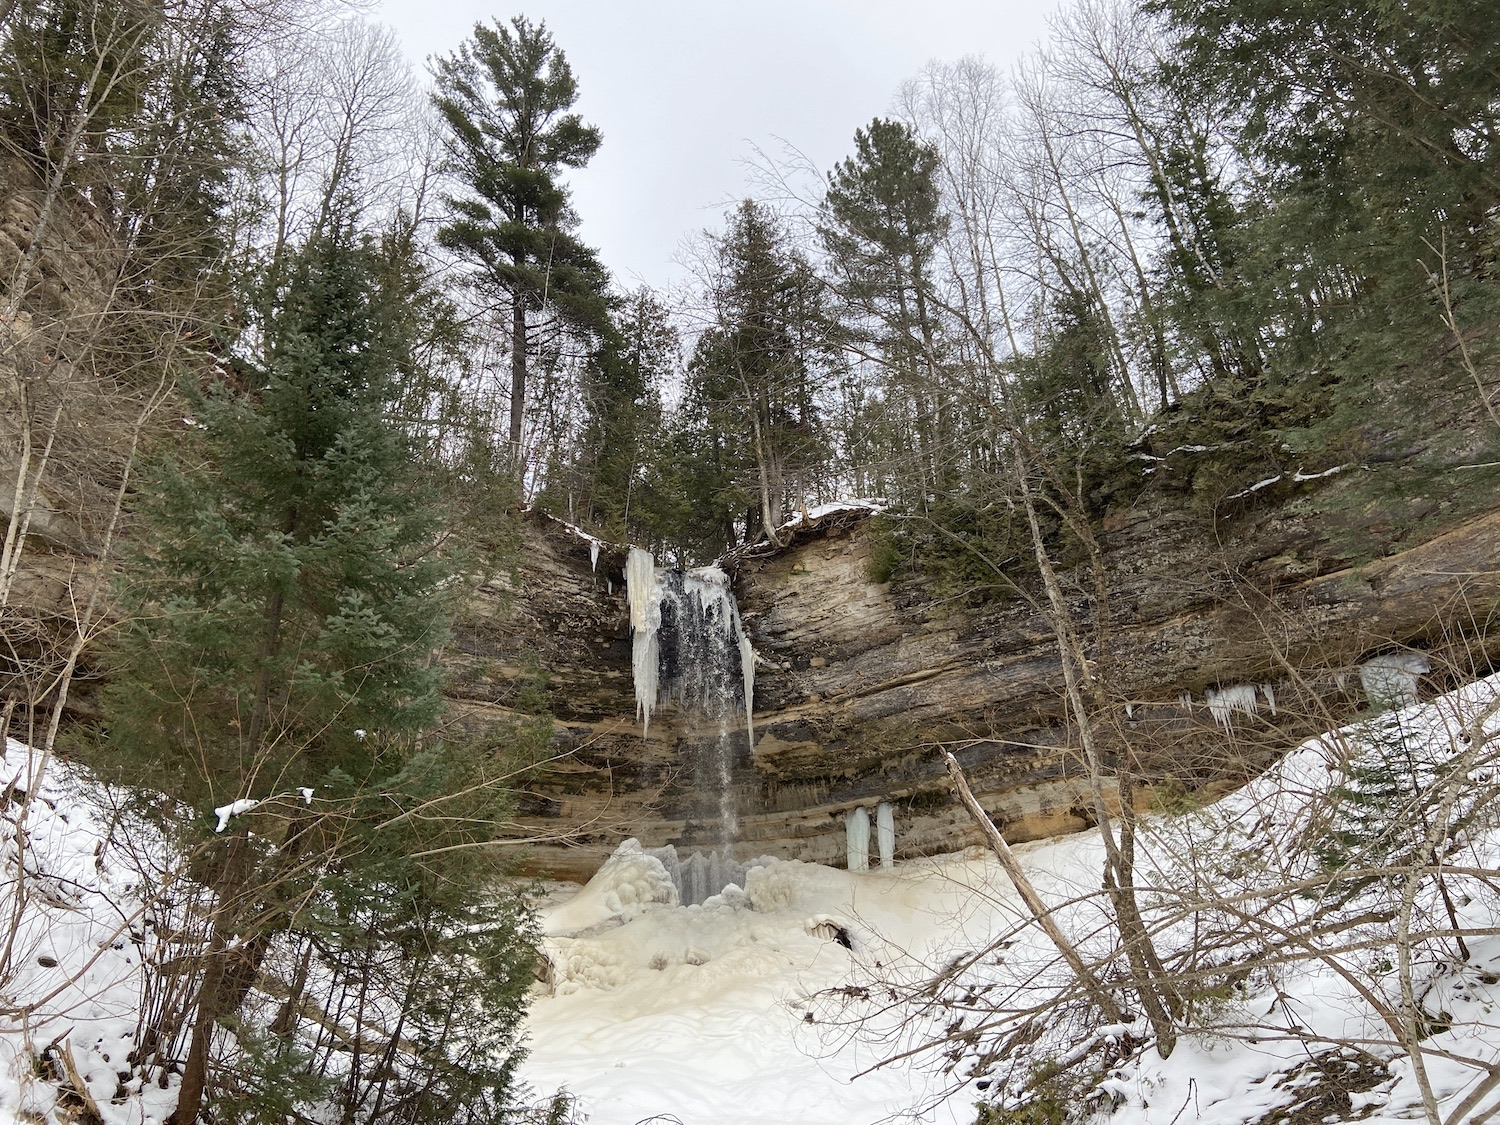 A snowy, icy waterfall in the Upper Peninsula, Michigan